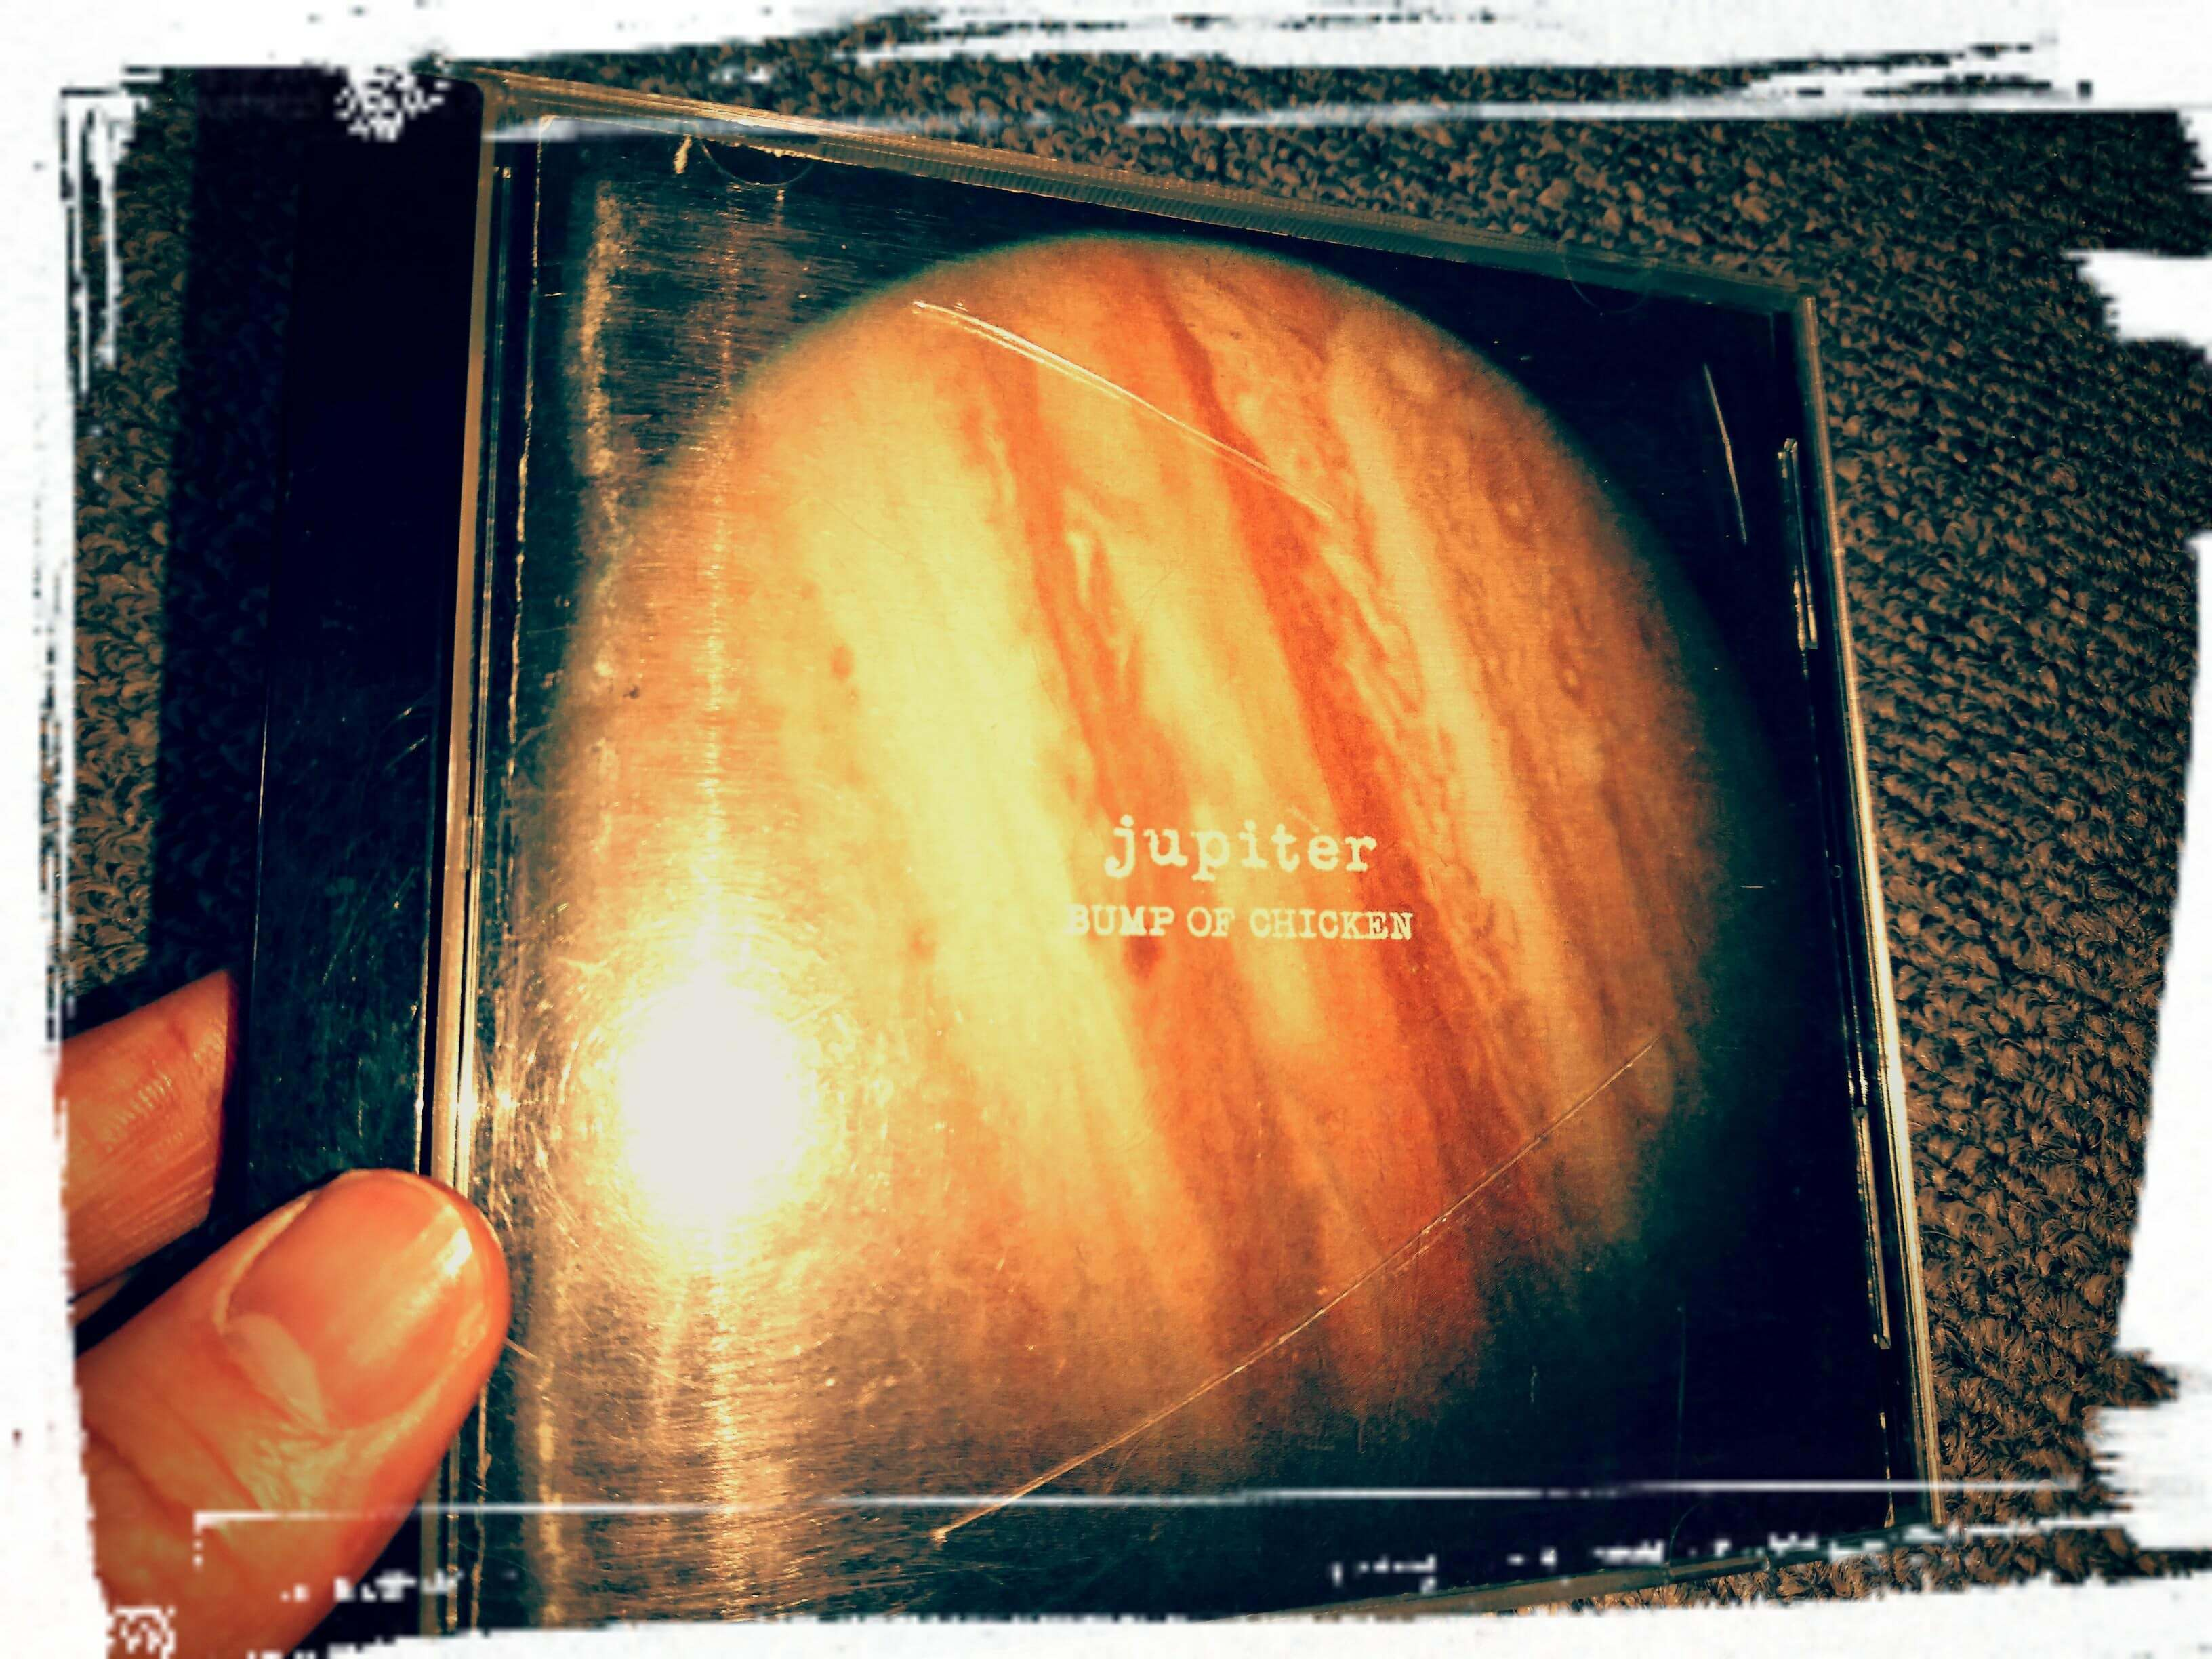 創刊号OFF AIR BUMP OF CHICKEN 「jupiter」